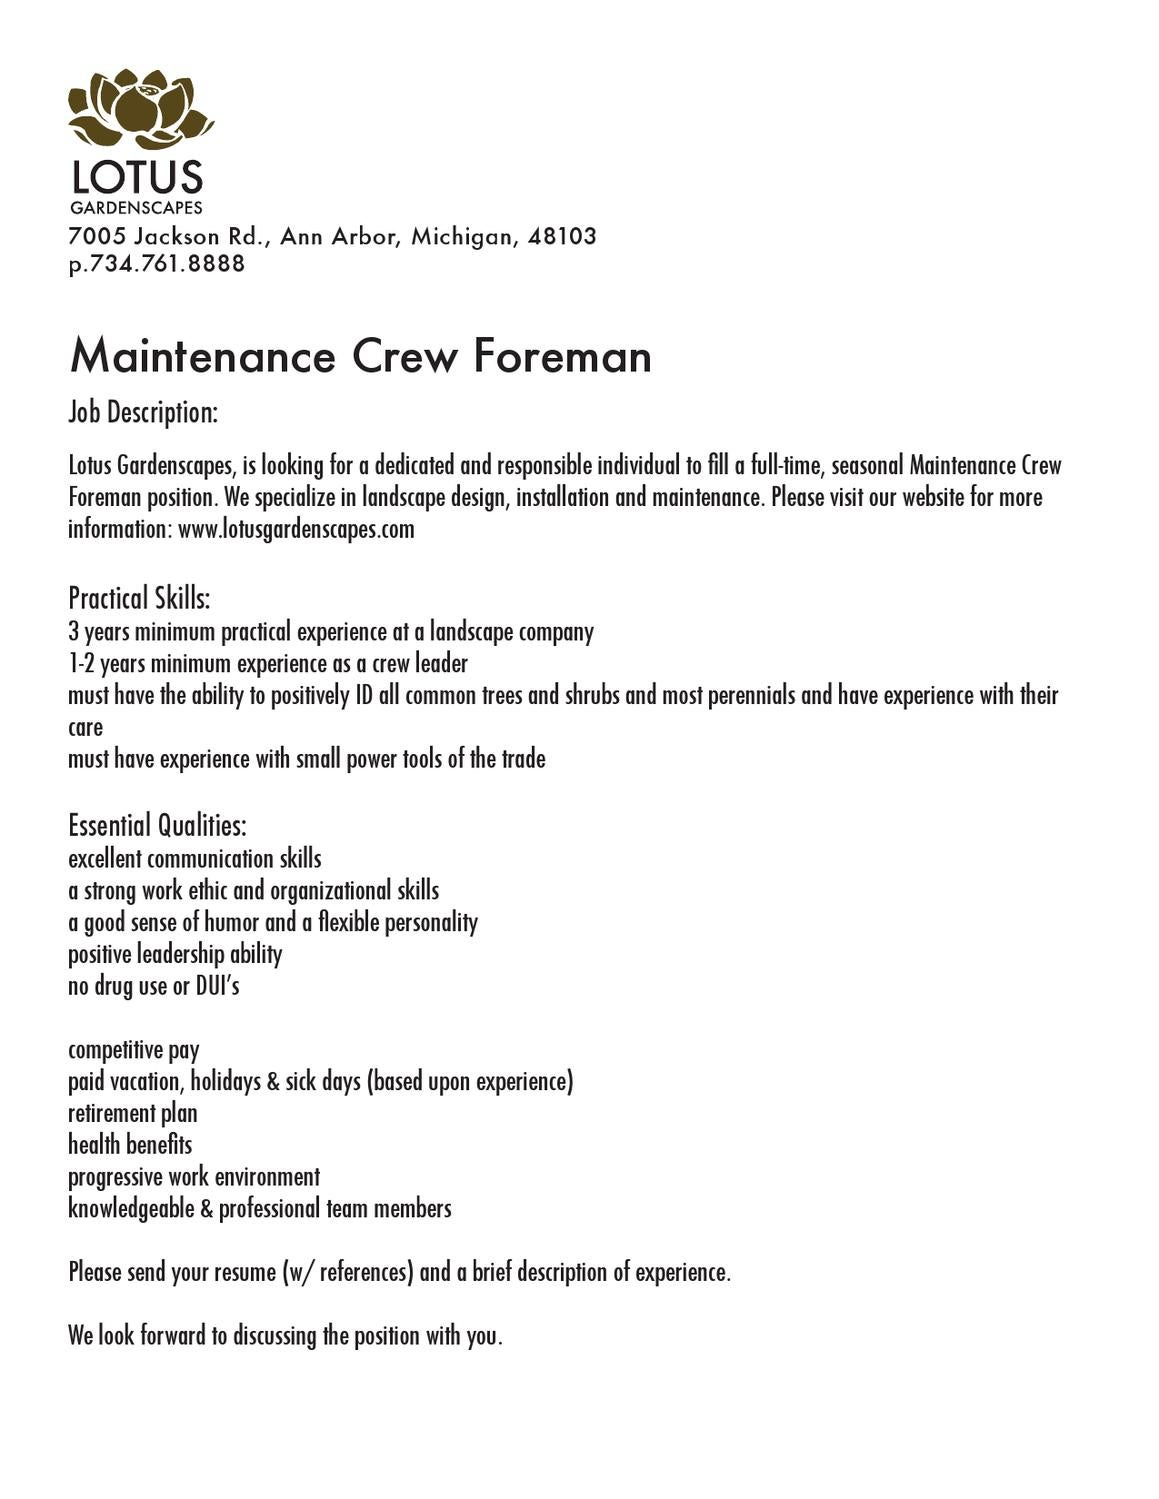 maintenance crew foreman by lotus gardenscapes inc issuu